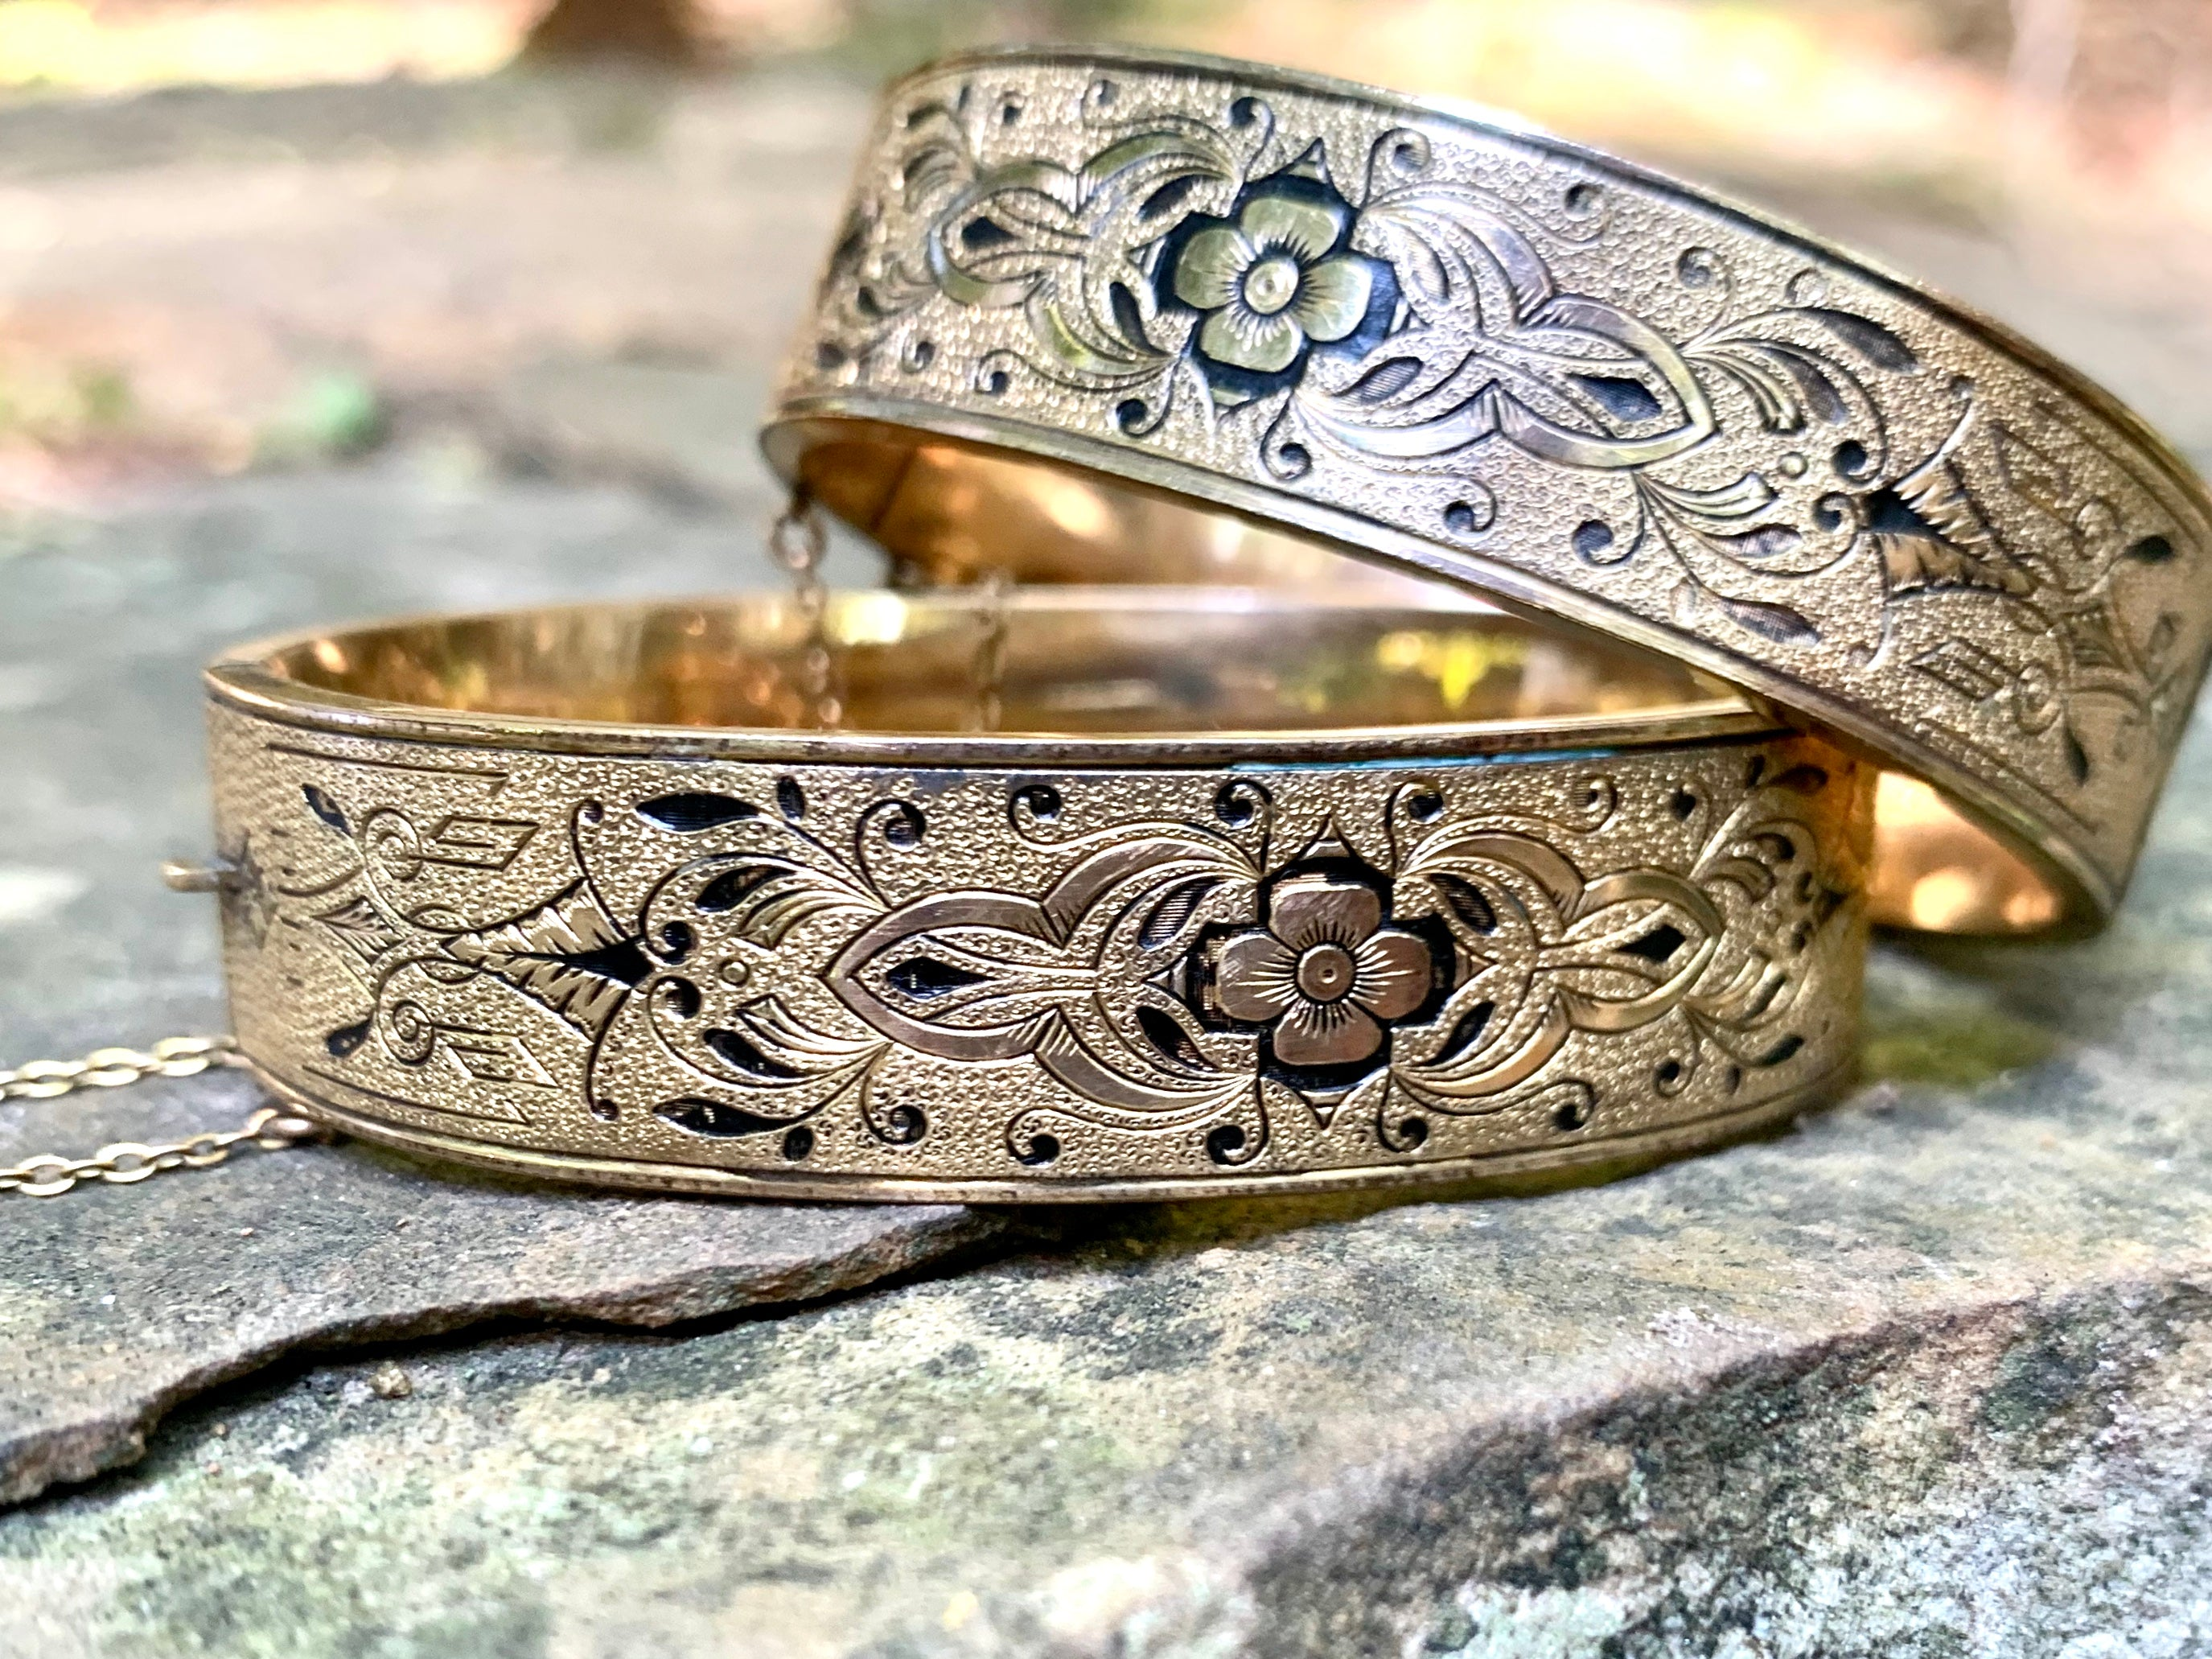 Set of antique wedding bangles